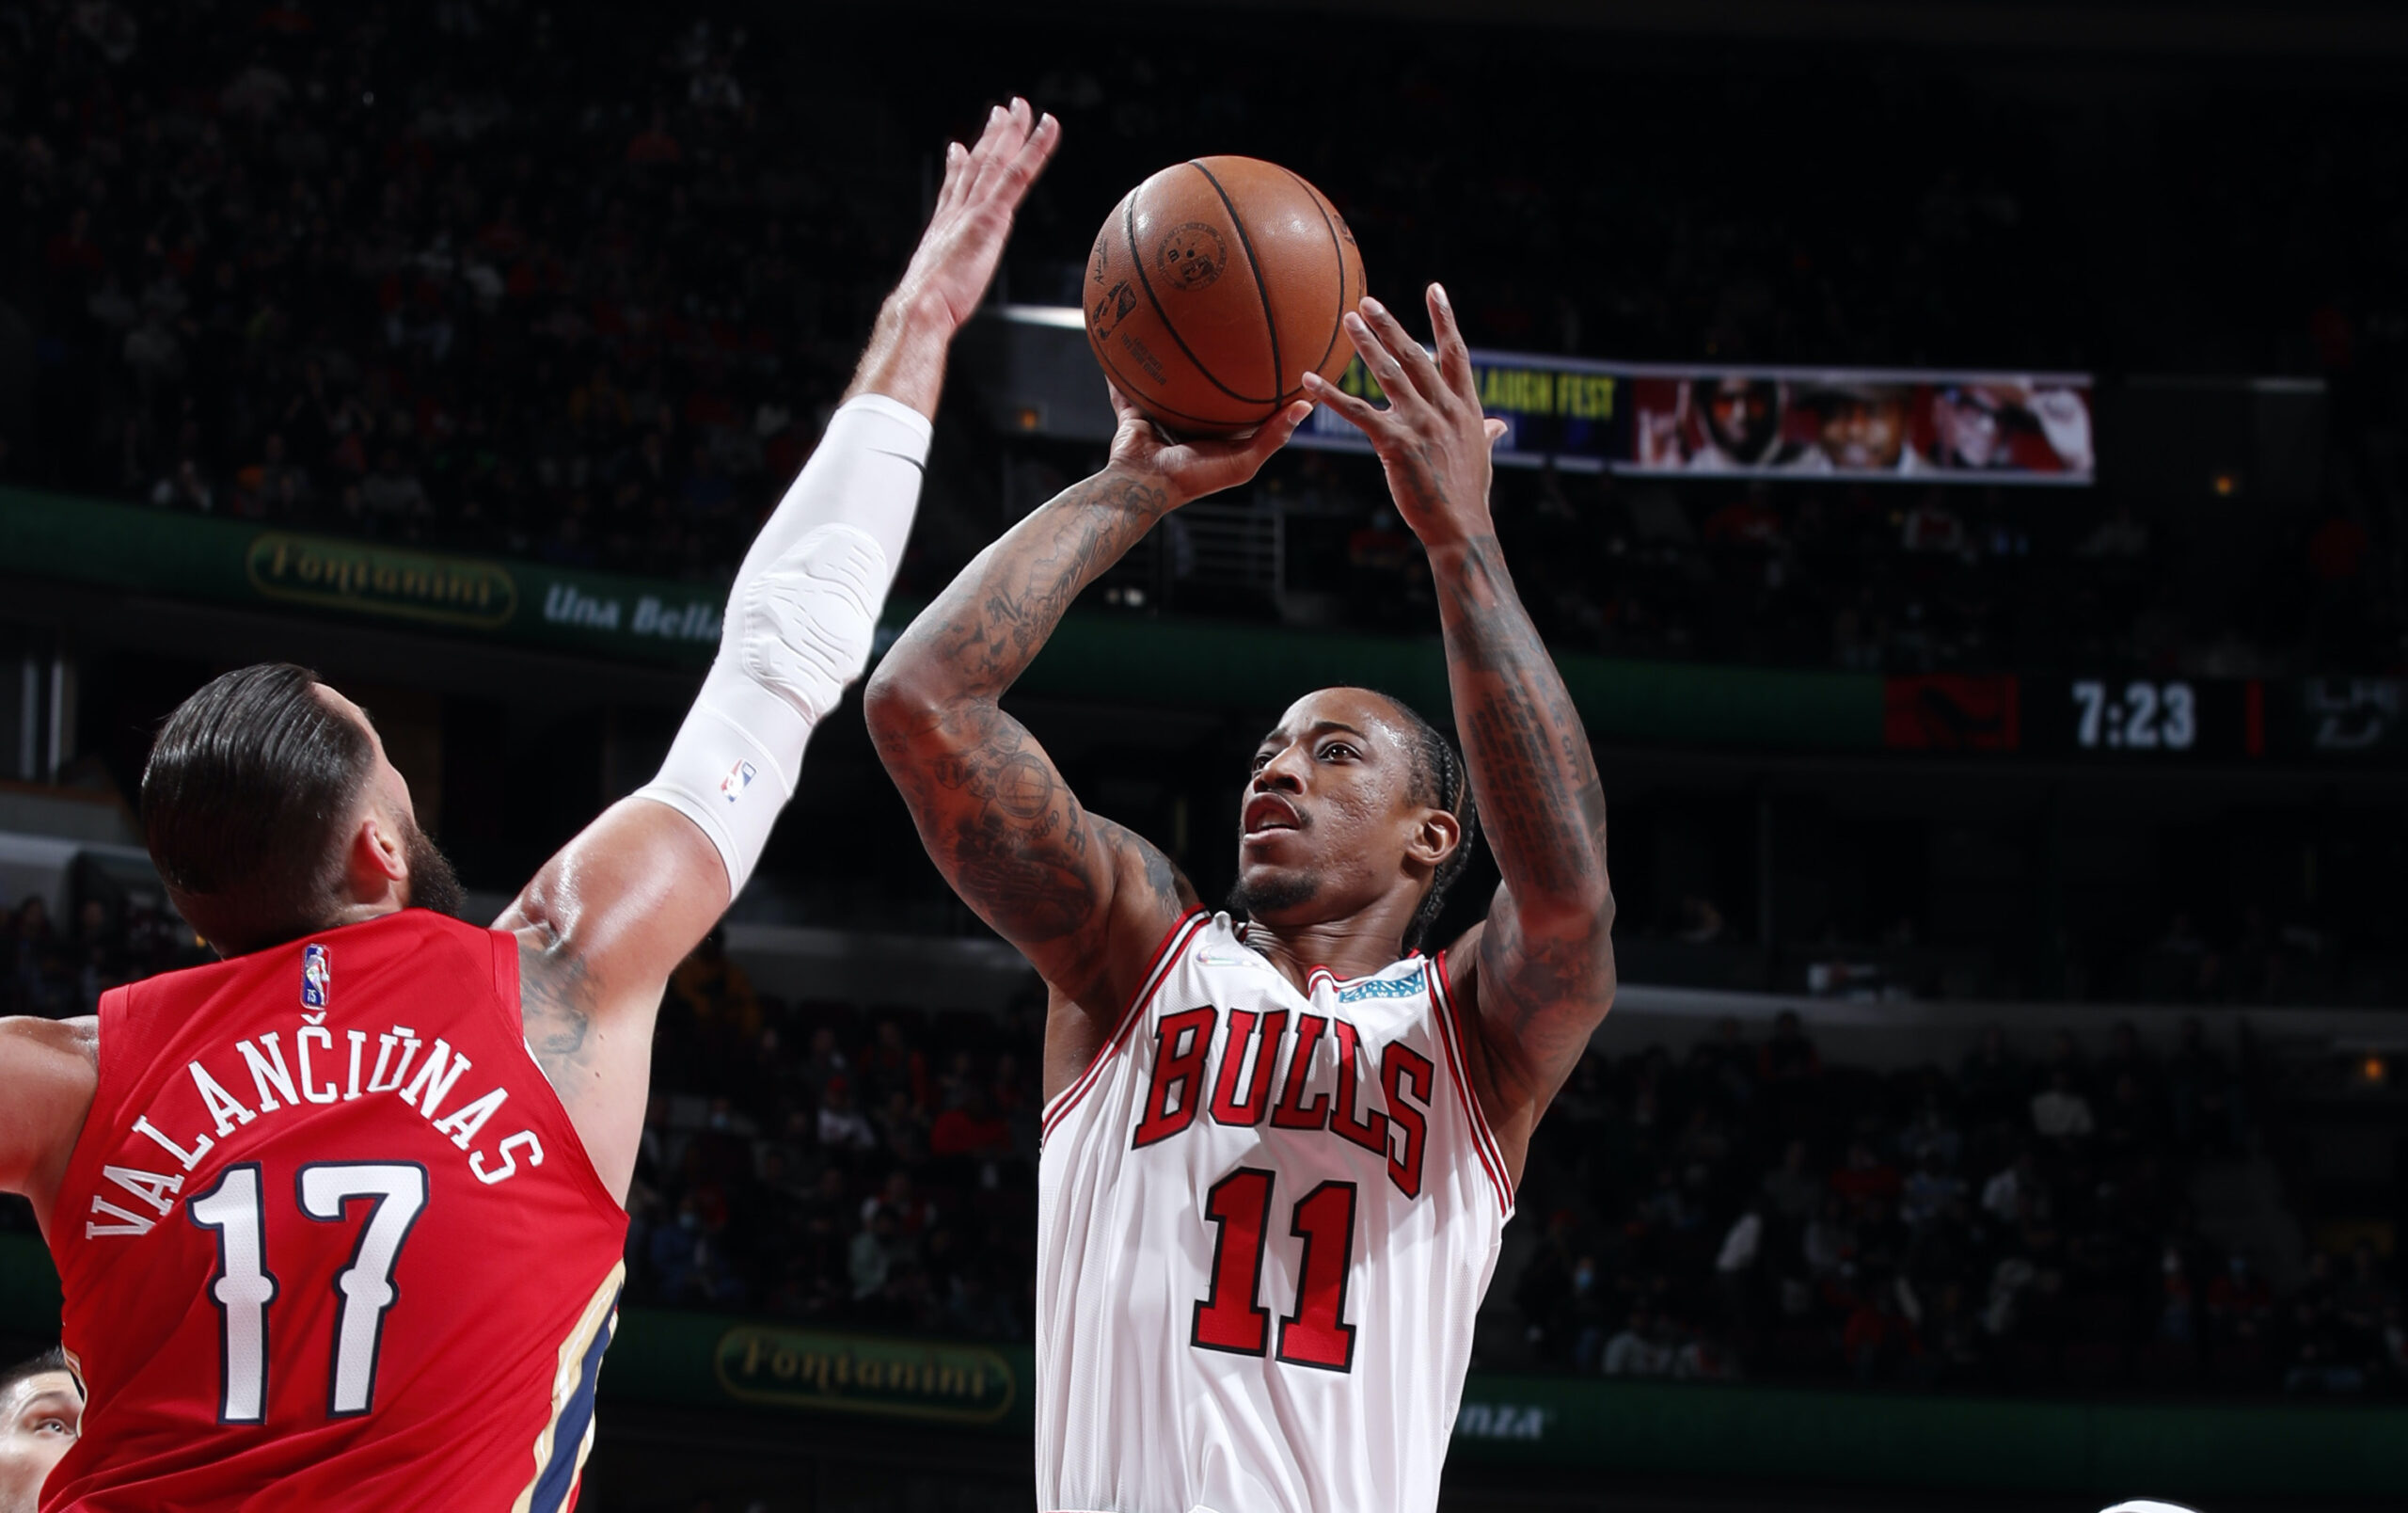 New-look Bulls fire on all cylinders in home opener